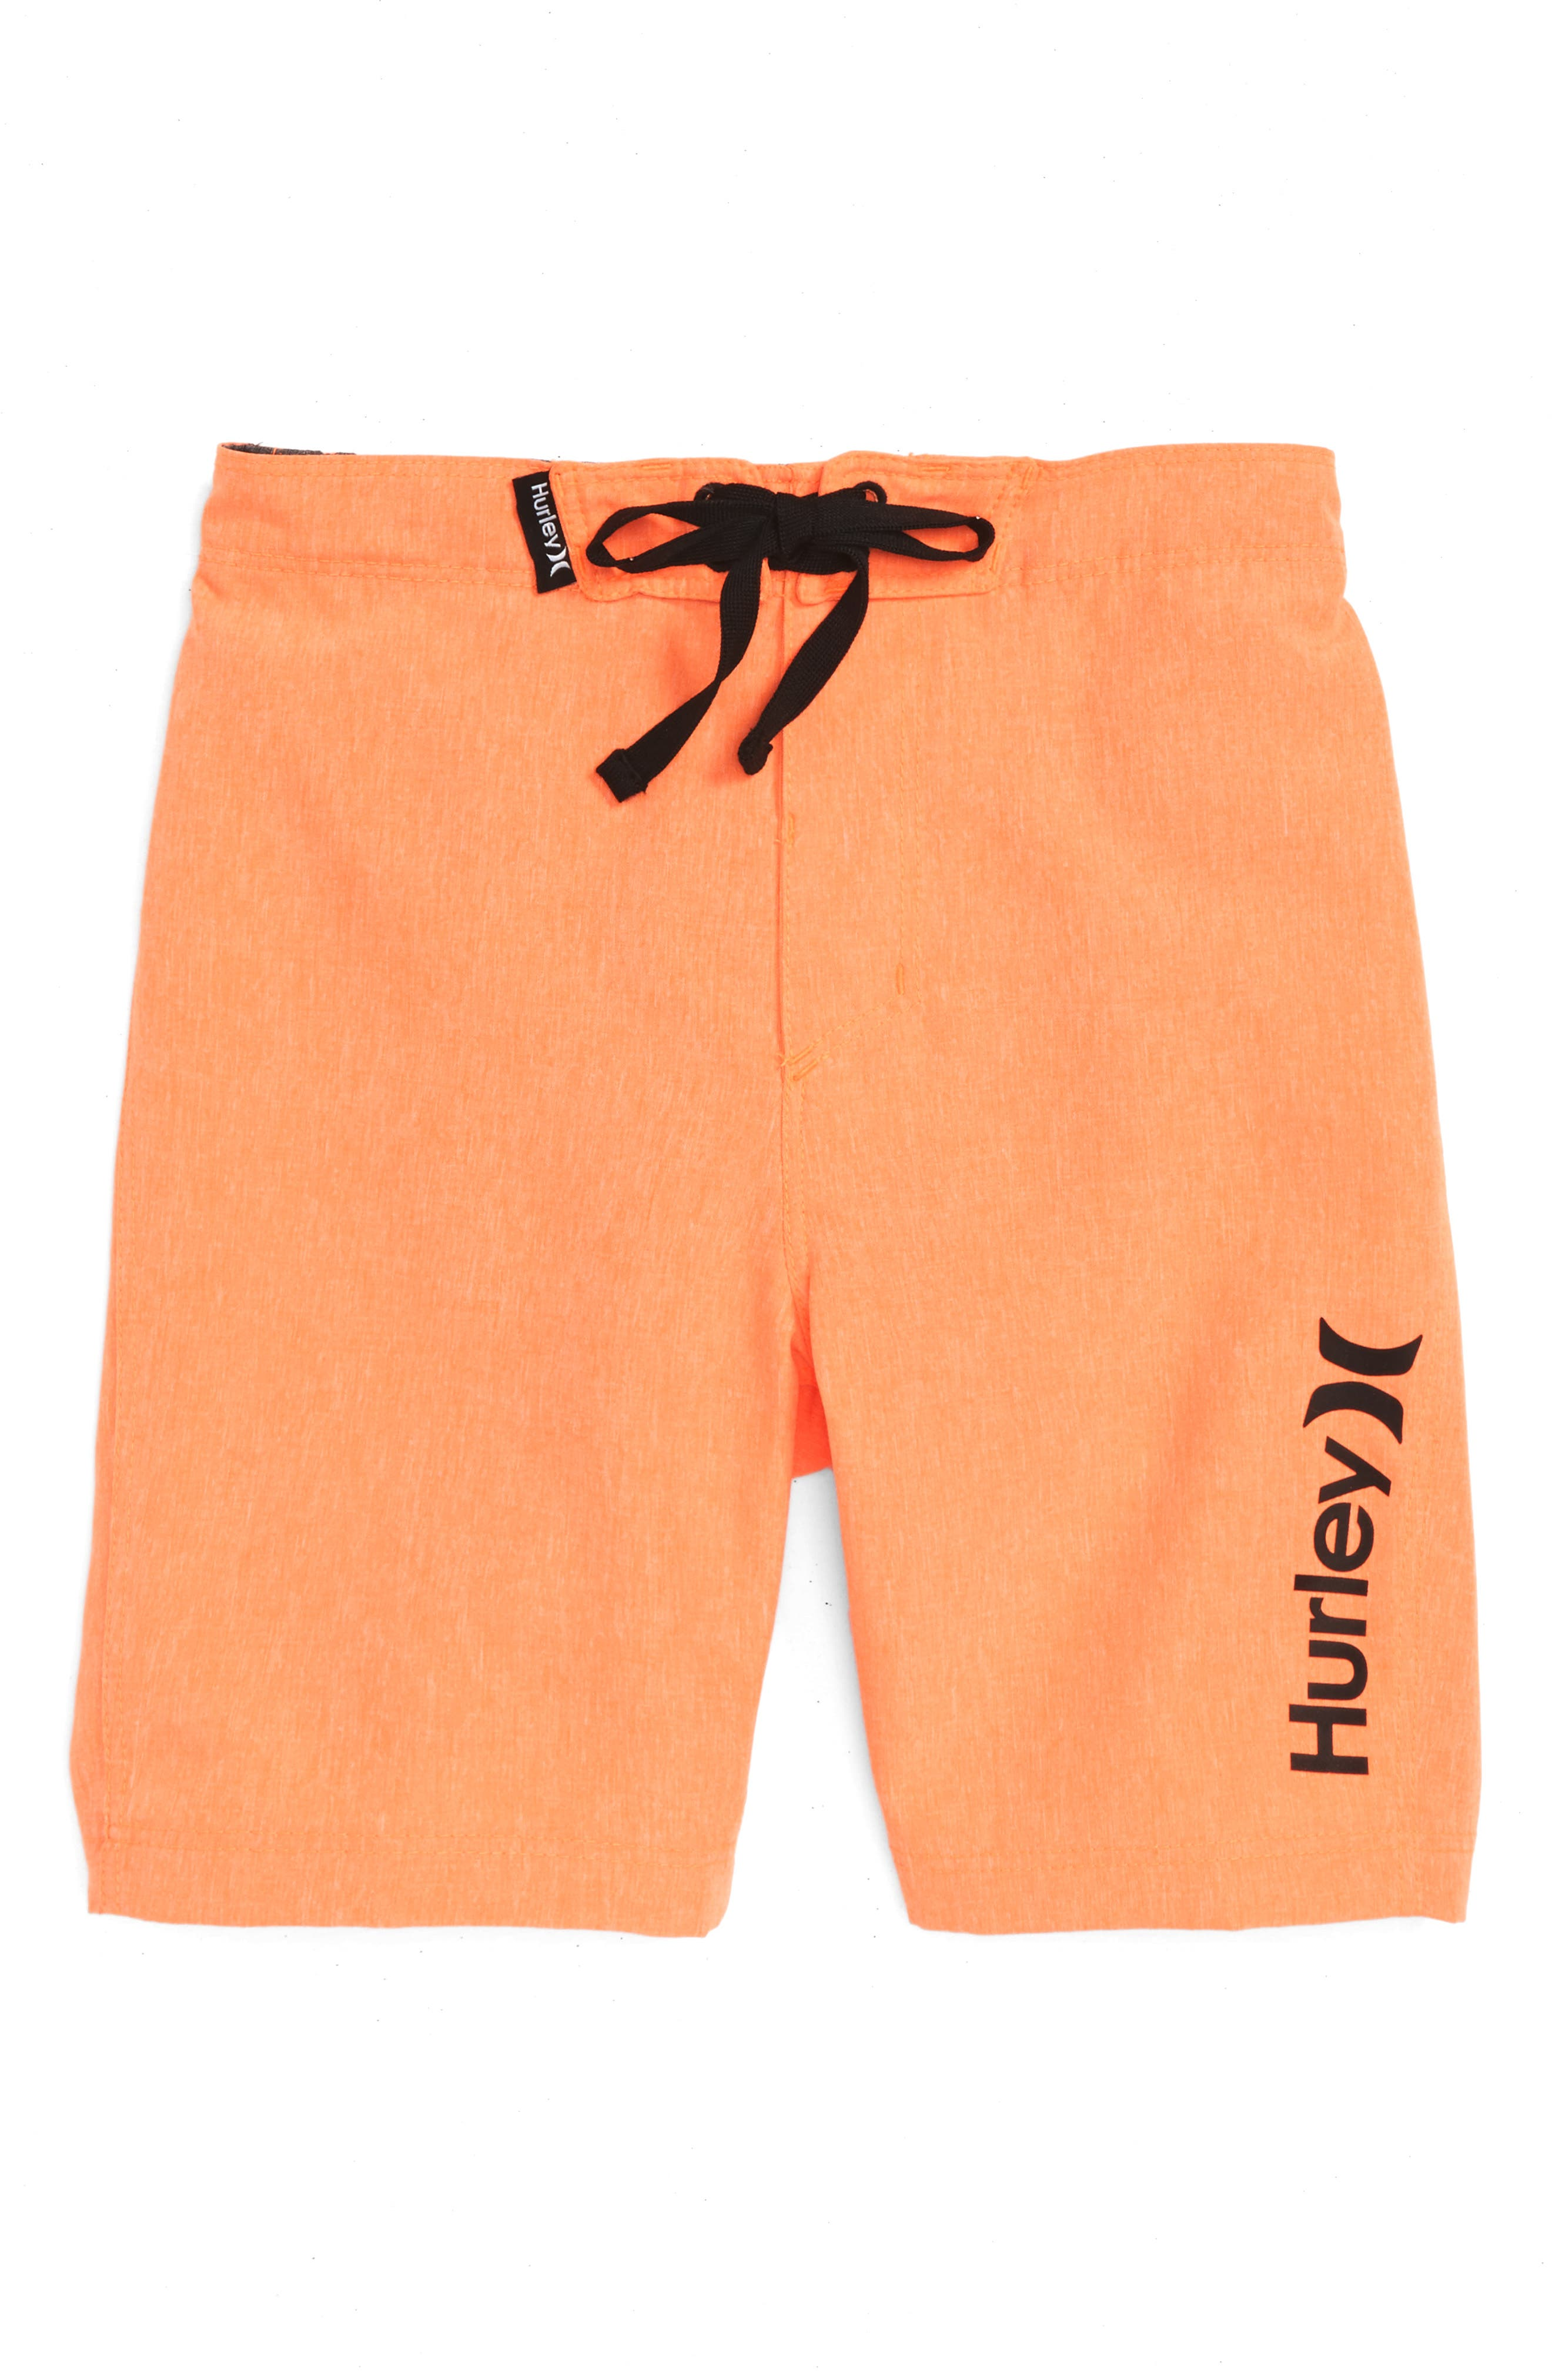 One and Only Dri-FIT Board Shorts,                             Main thumbnail 5, color,